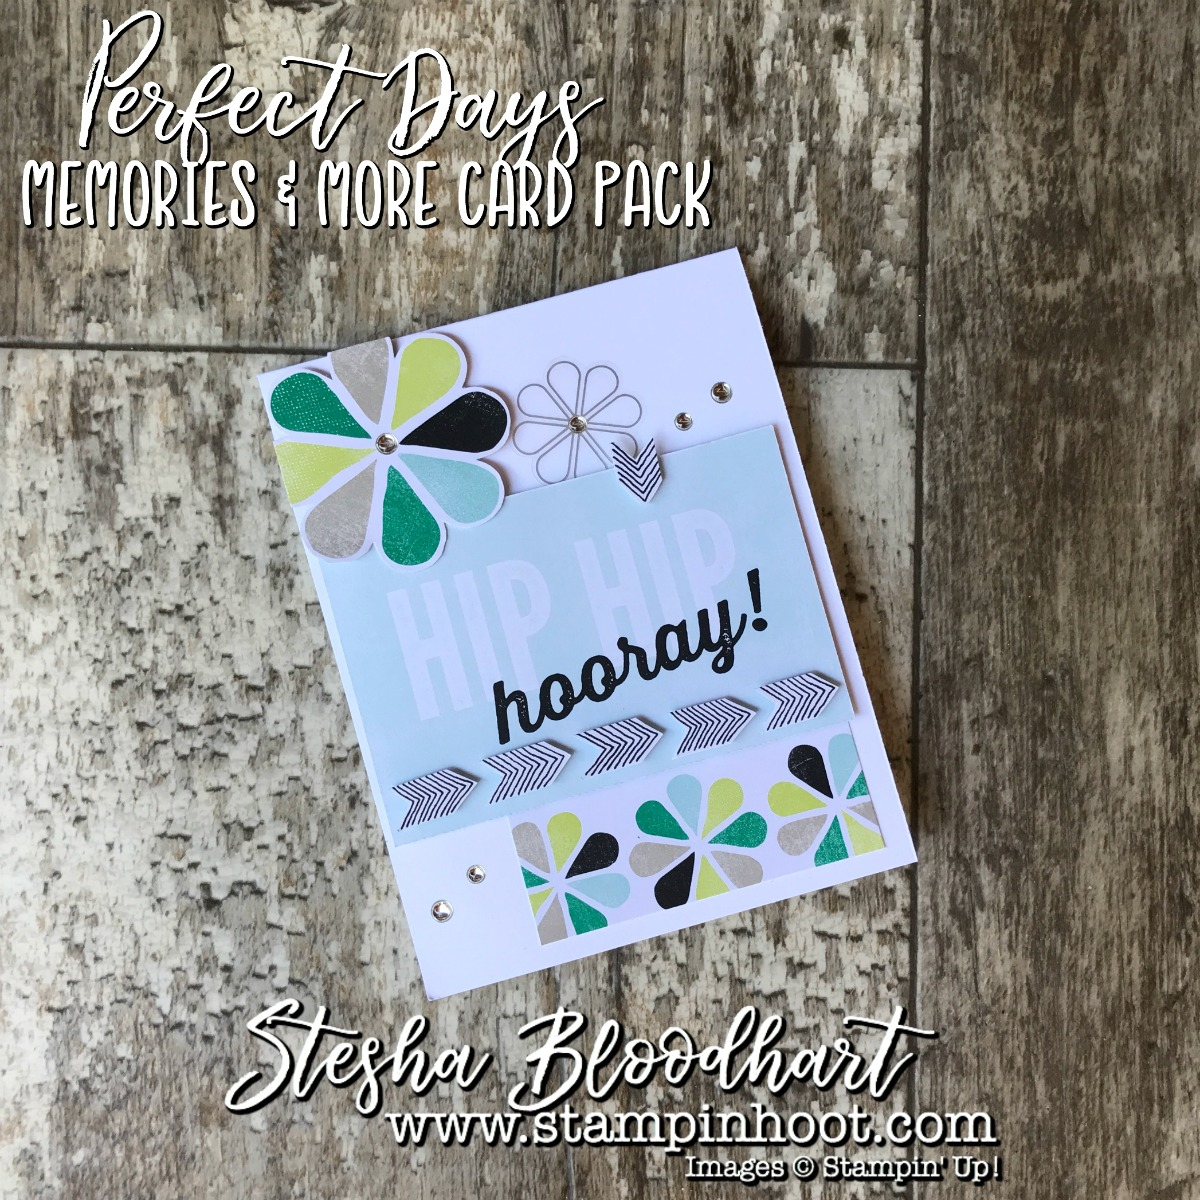 Perfect Days Memories & More Card Packs by Stampin' Up! Make for Quick & Easy Cards-on-the-Go! No Stamps Necessary! See details on my blog! Stampin' Hoot! Stesha Bloodhart #memories&more #stampinup #stampinhoot #quickcards #papercrafts #scrapbooking #cardmaking #handmadecrafts #ididthis #demonstrator